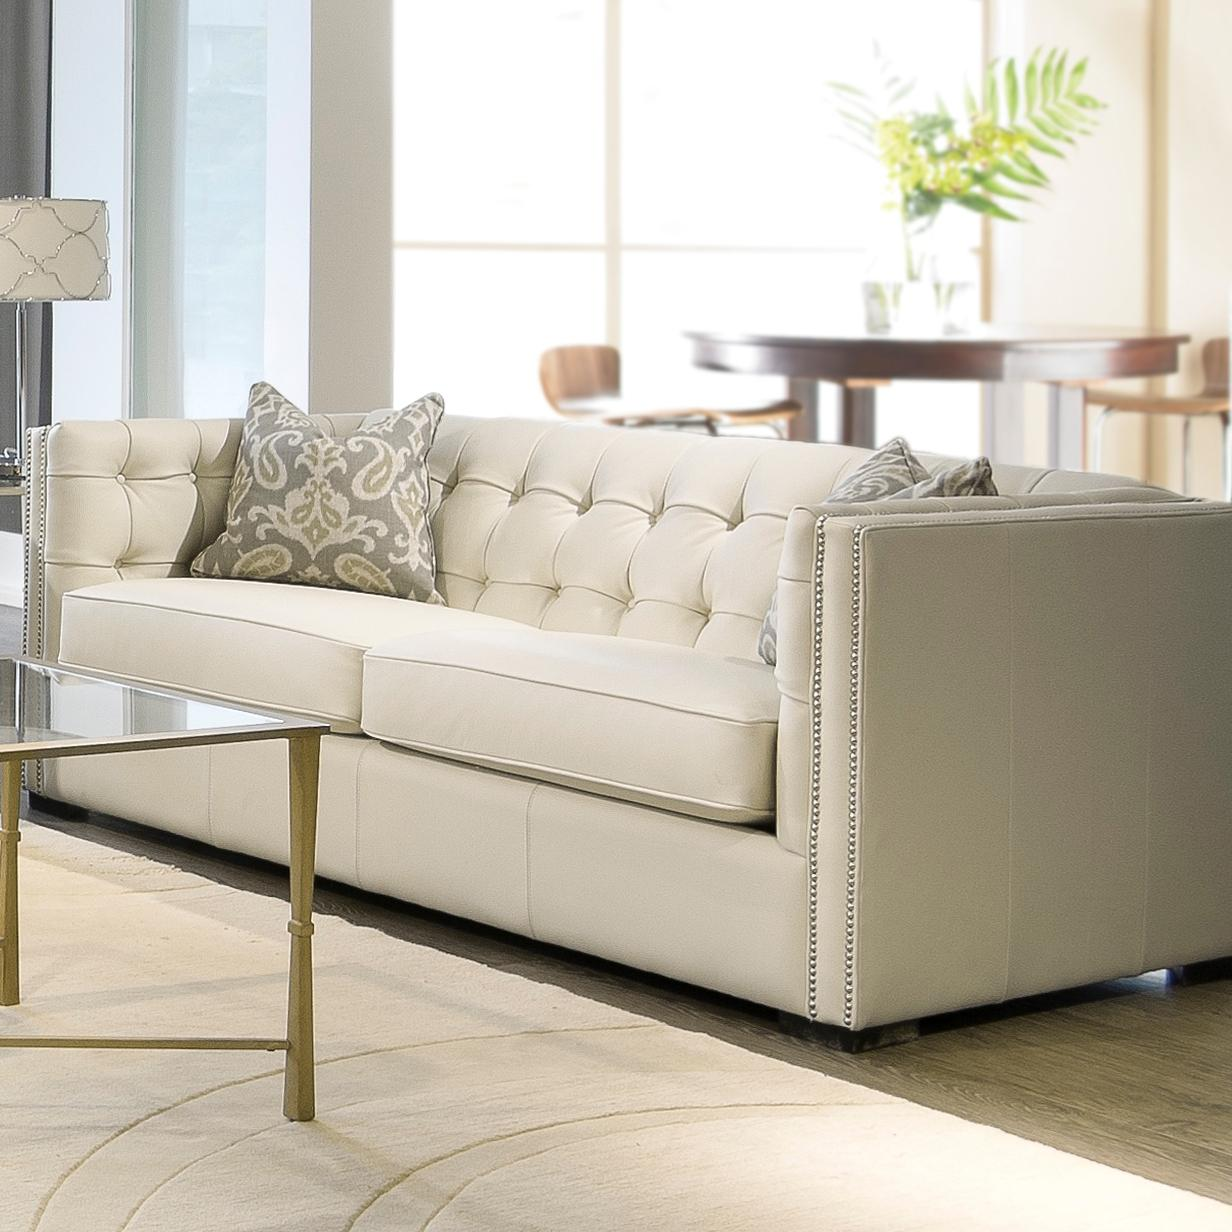 7393 Series Condo Sofa by Decor-Rest at Johnny Janosik